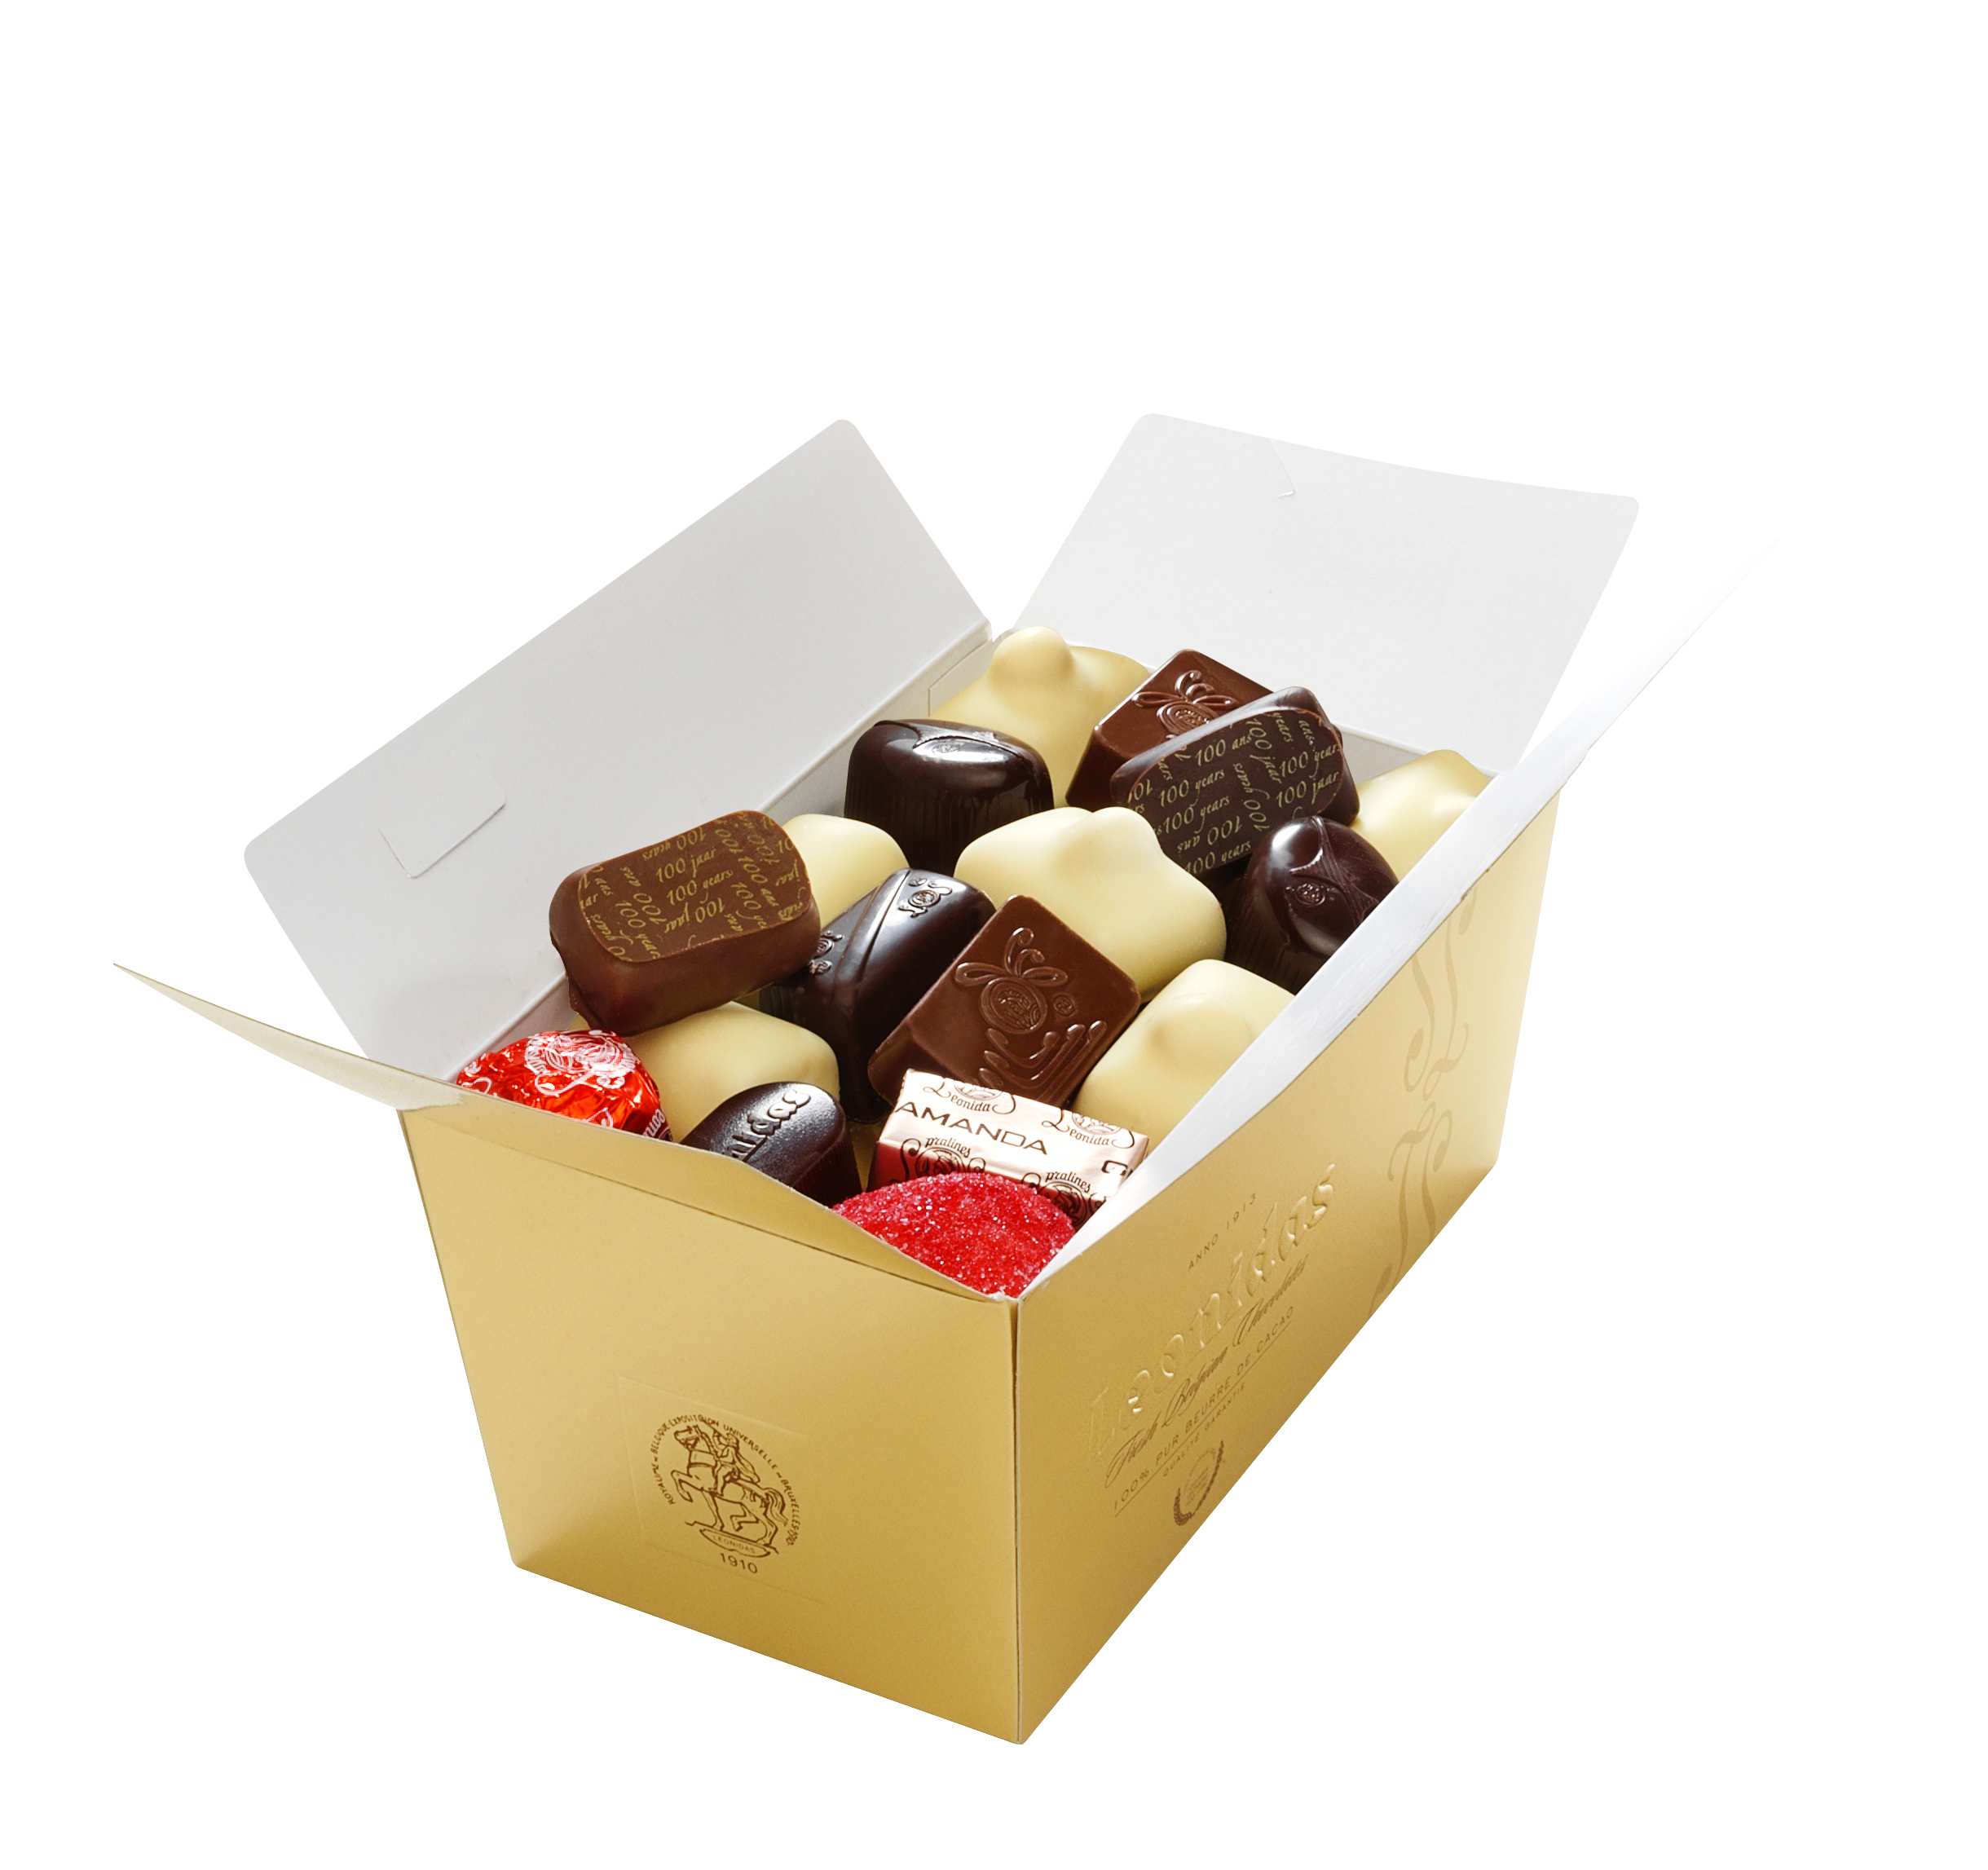 General Chocolates assortment image